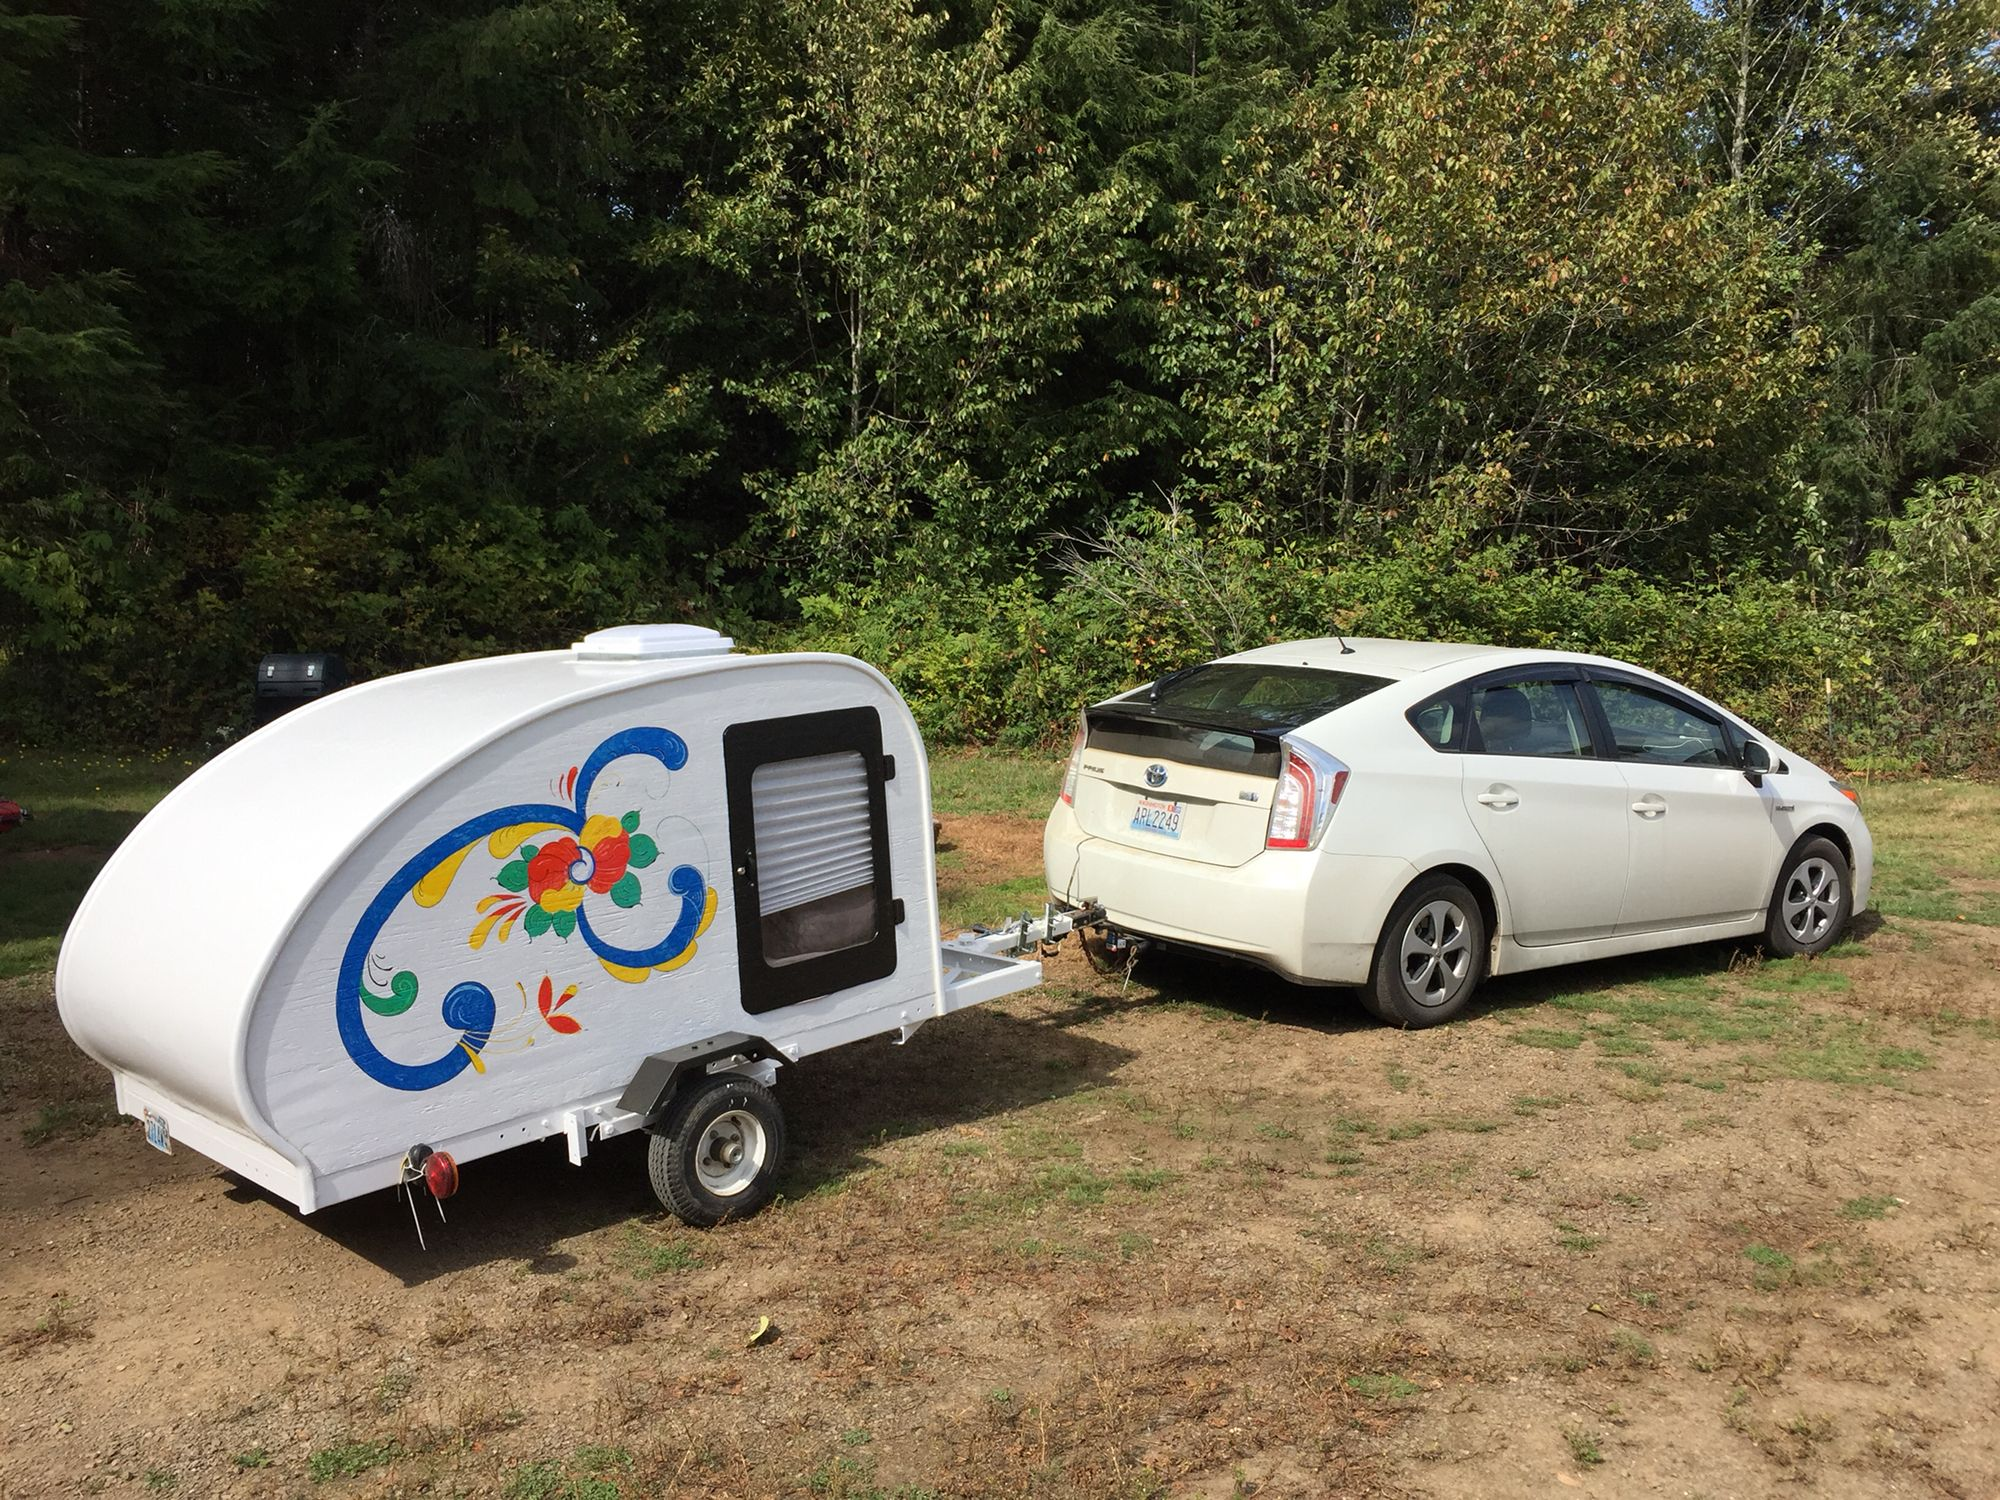 Prius Pulling A Teardrop Trailer I Made The Trailer With My Husband Tiny Trailers Prius Small Trailer